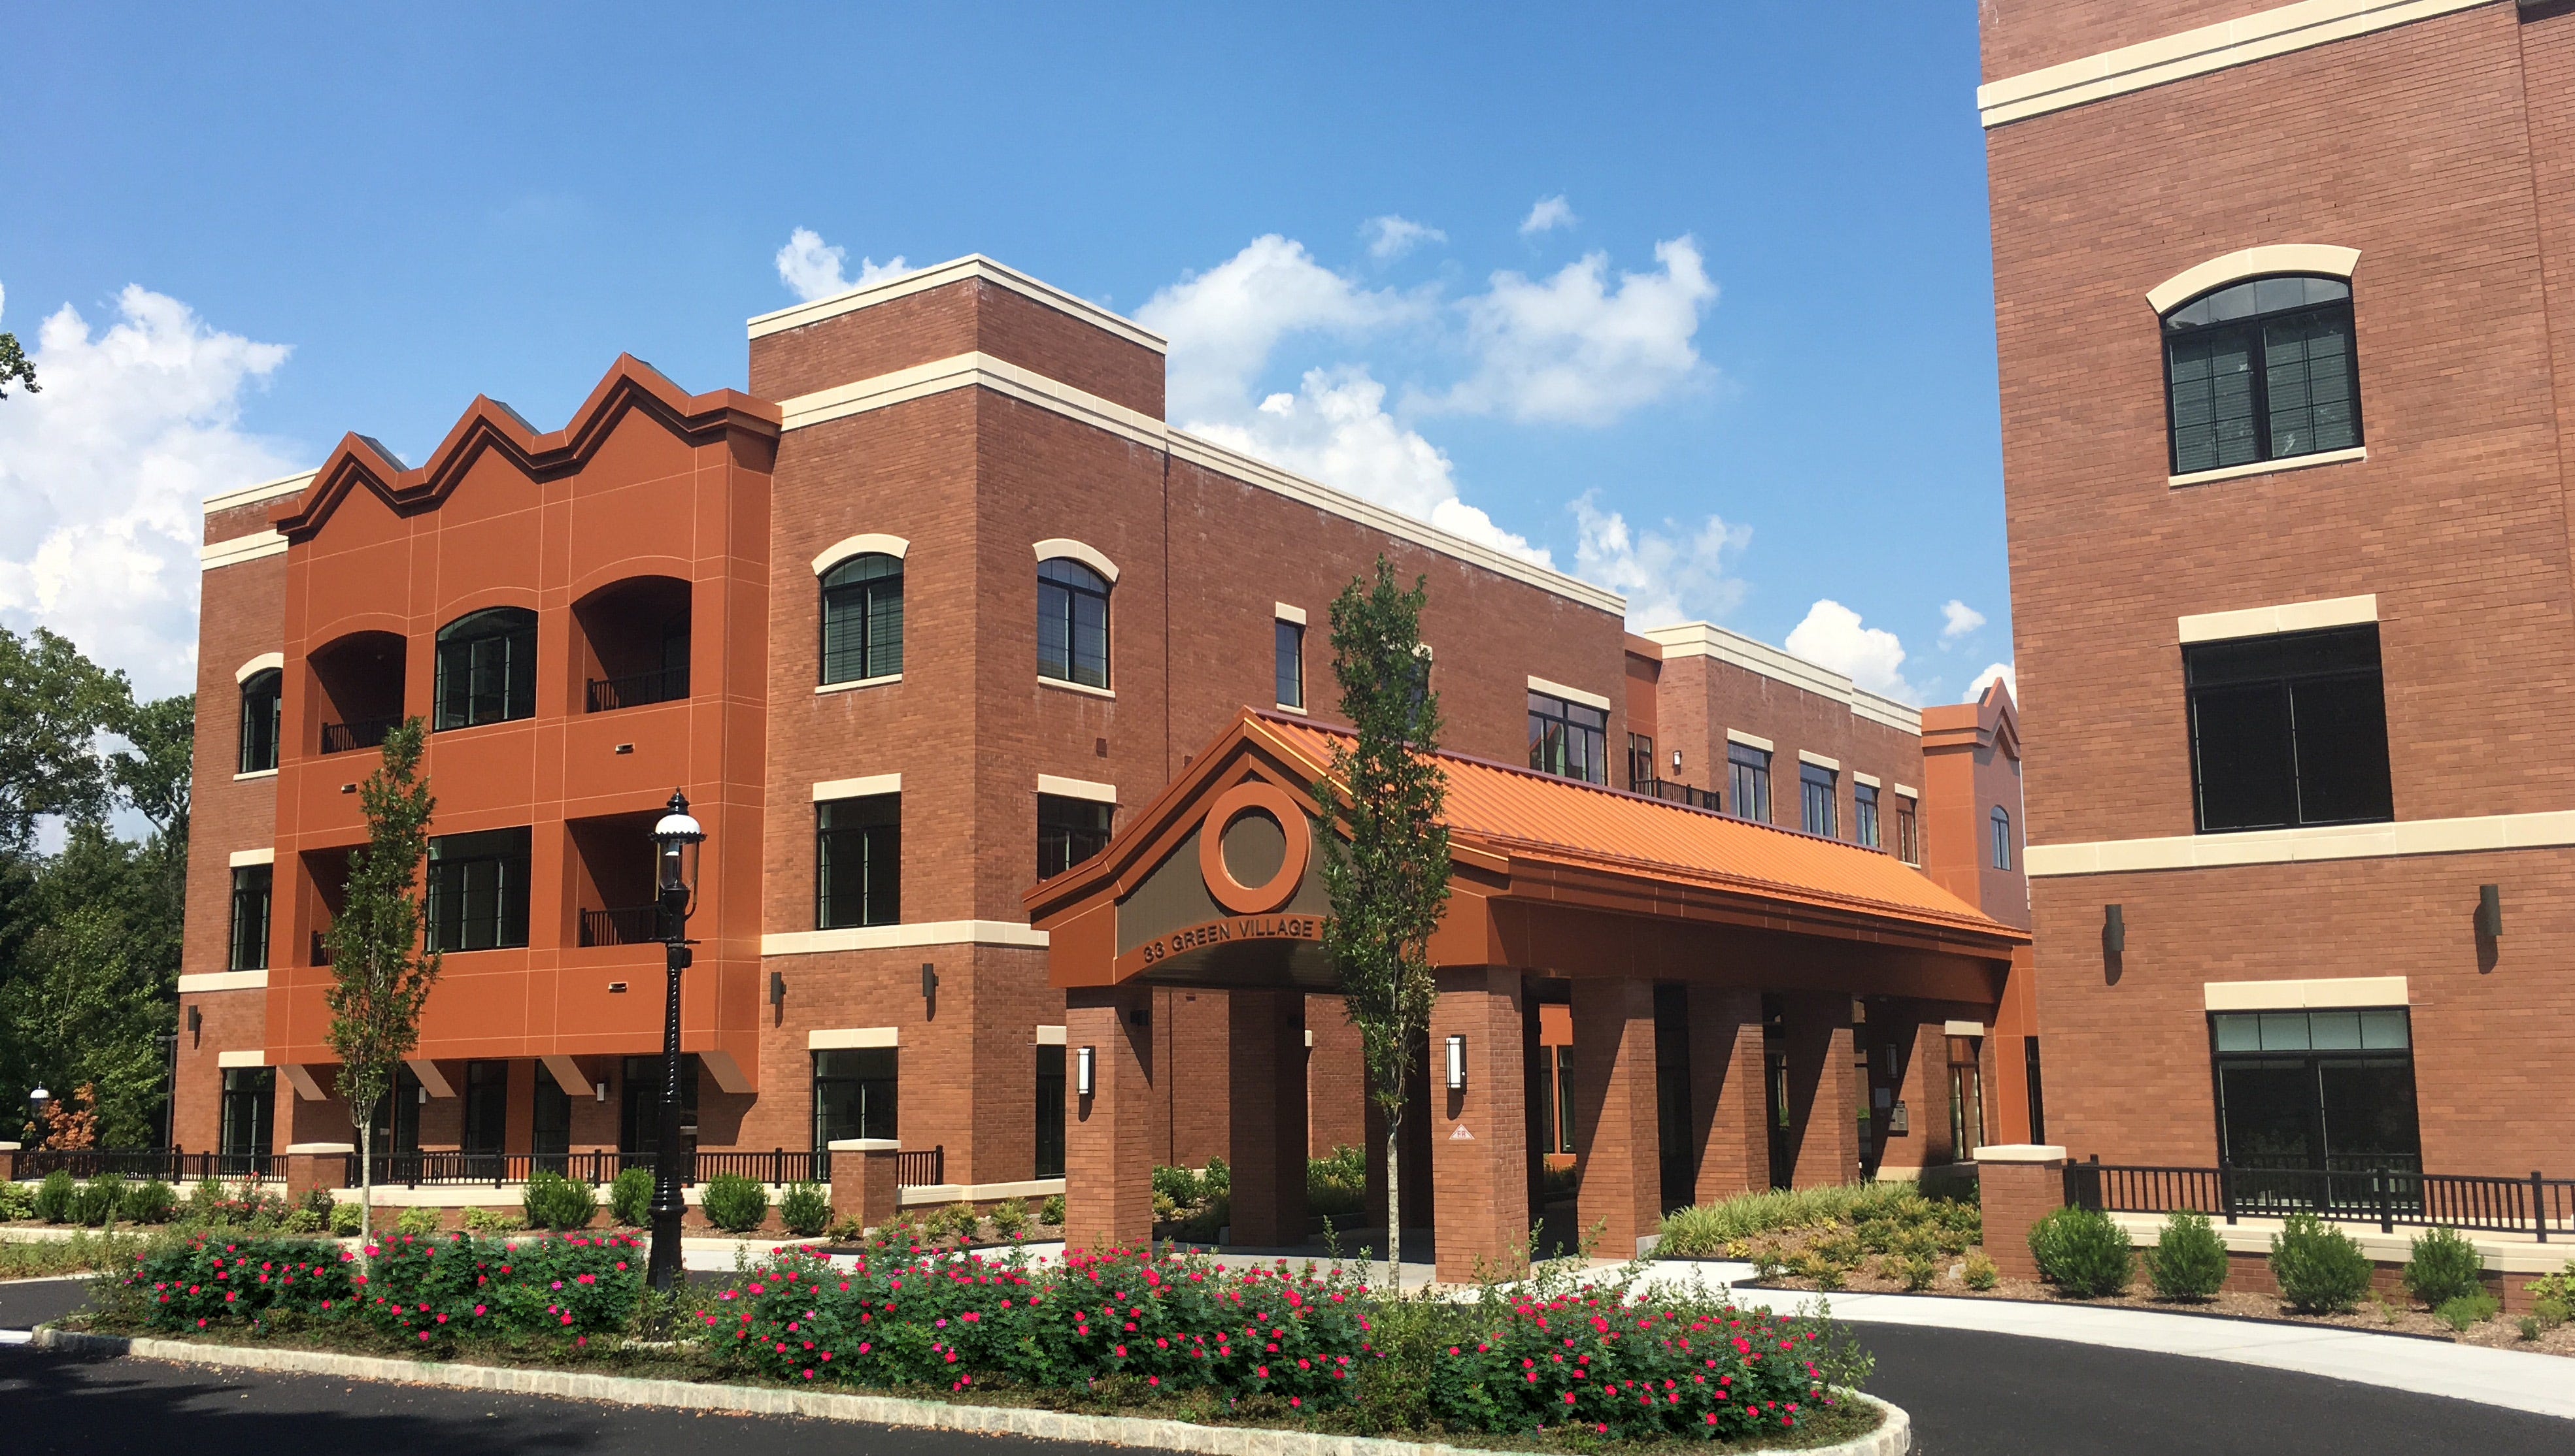 Madison Place grand opens from 1 to 4 p.m. Sunday, Sept. 16.